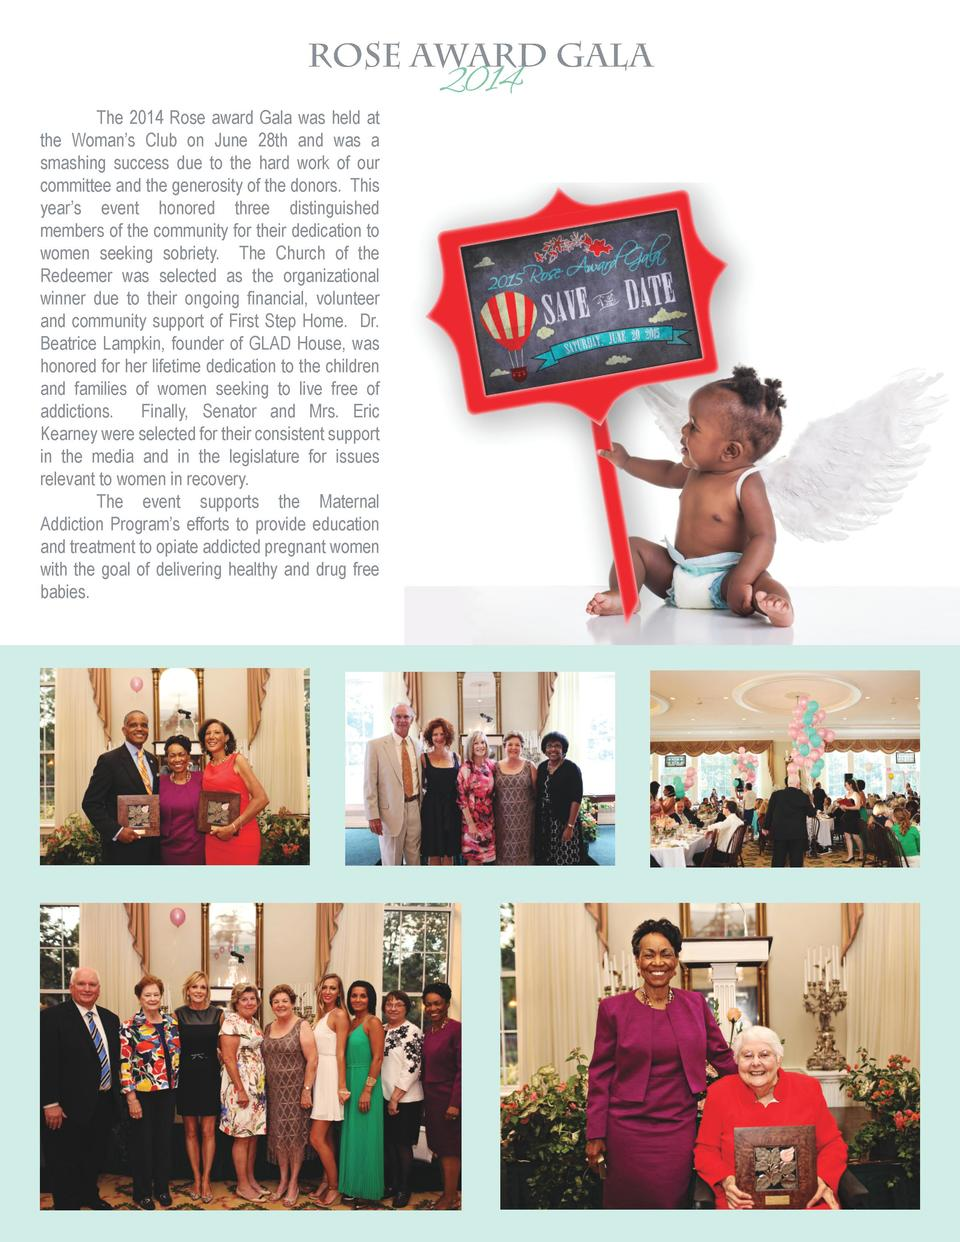 istock Rose Award Gala 2014 sign babies- 35 cred The 2014 Rose award Gala was held at the Woman   s Club on June 28th and ...